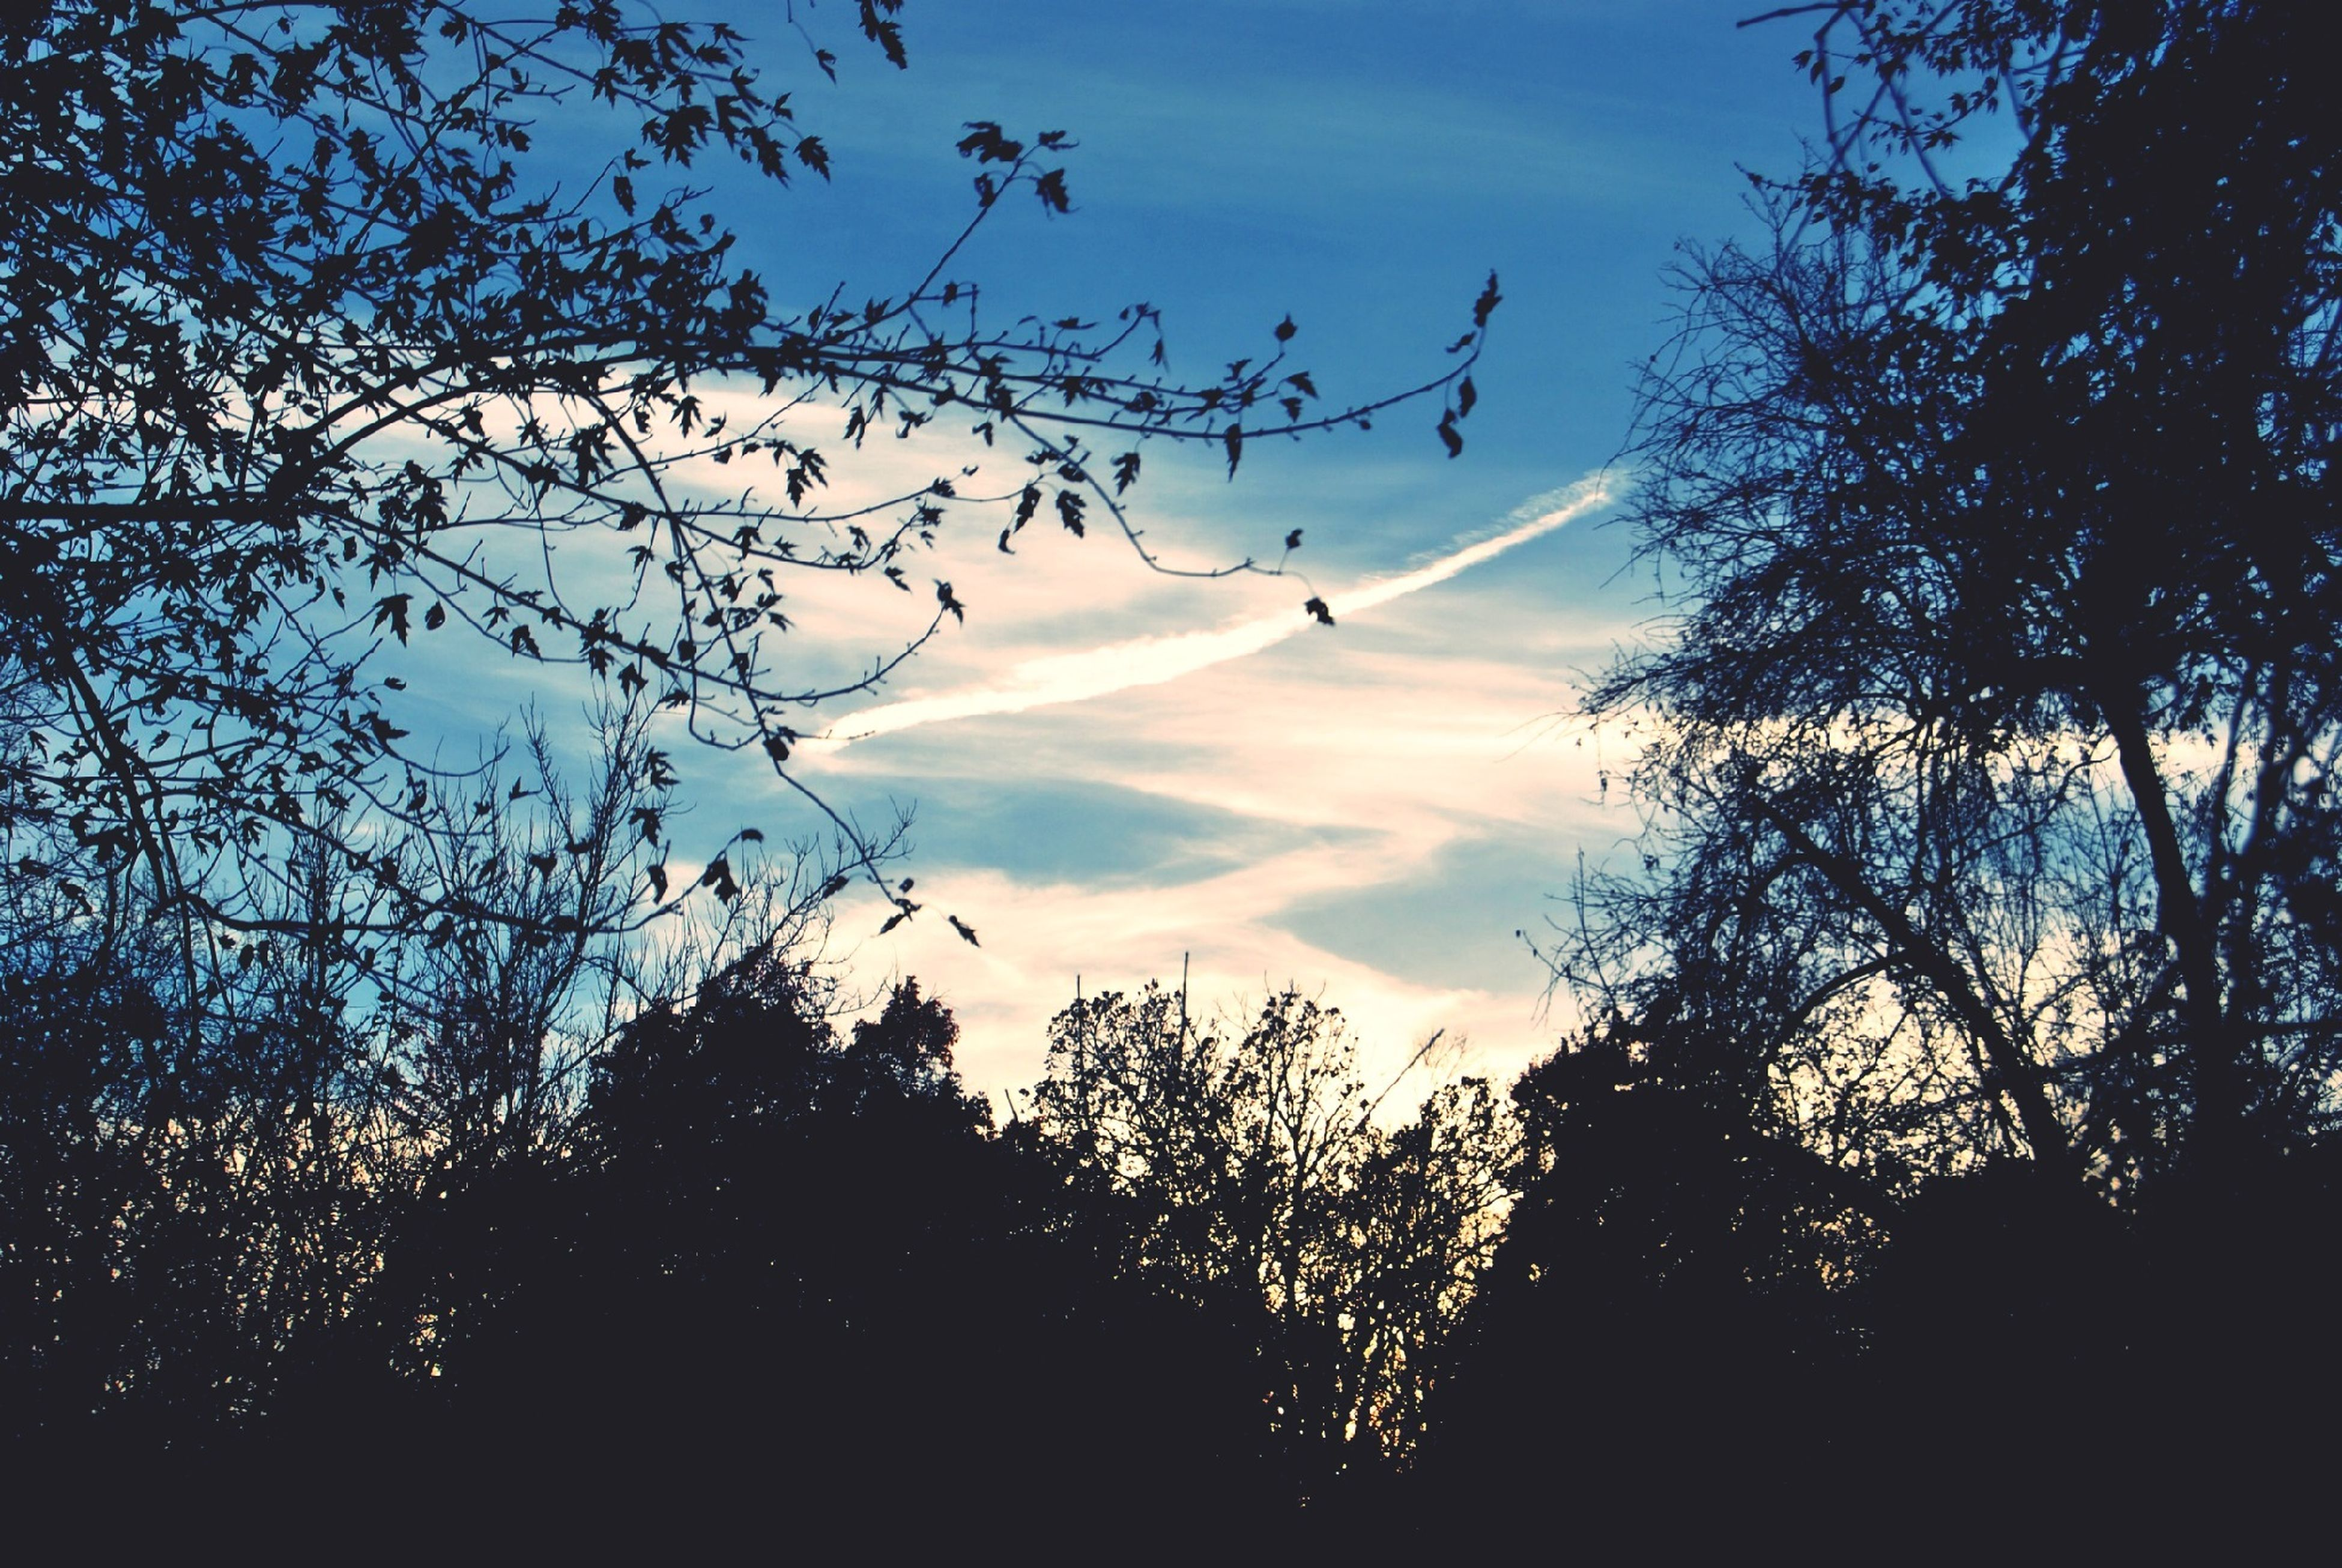 tree, silhouette, sky, flying, low angle view, branch, tranquility, scenics, beauty in nature, nature, tranquil scene, cloud - sky, sunset, growth, cloud, mid-air, outdoors, no people, bare tree, dusk